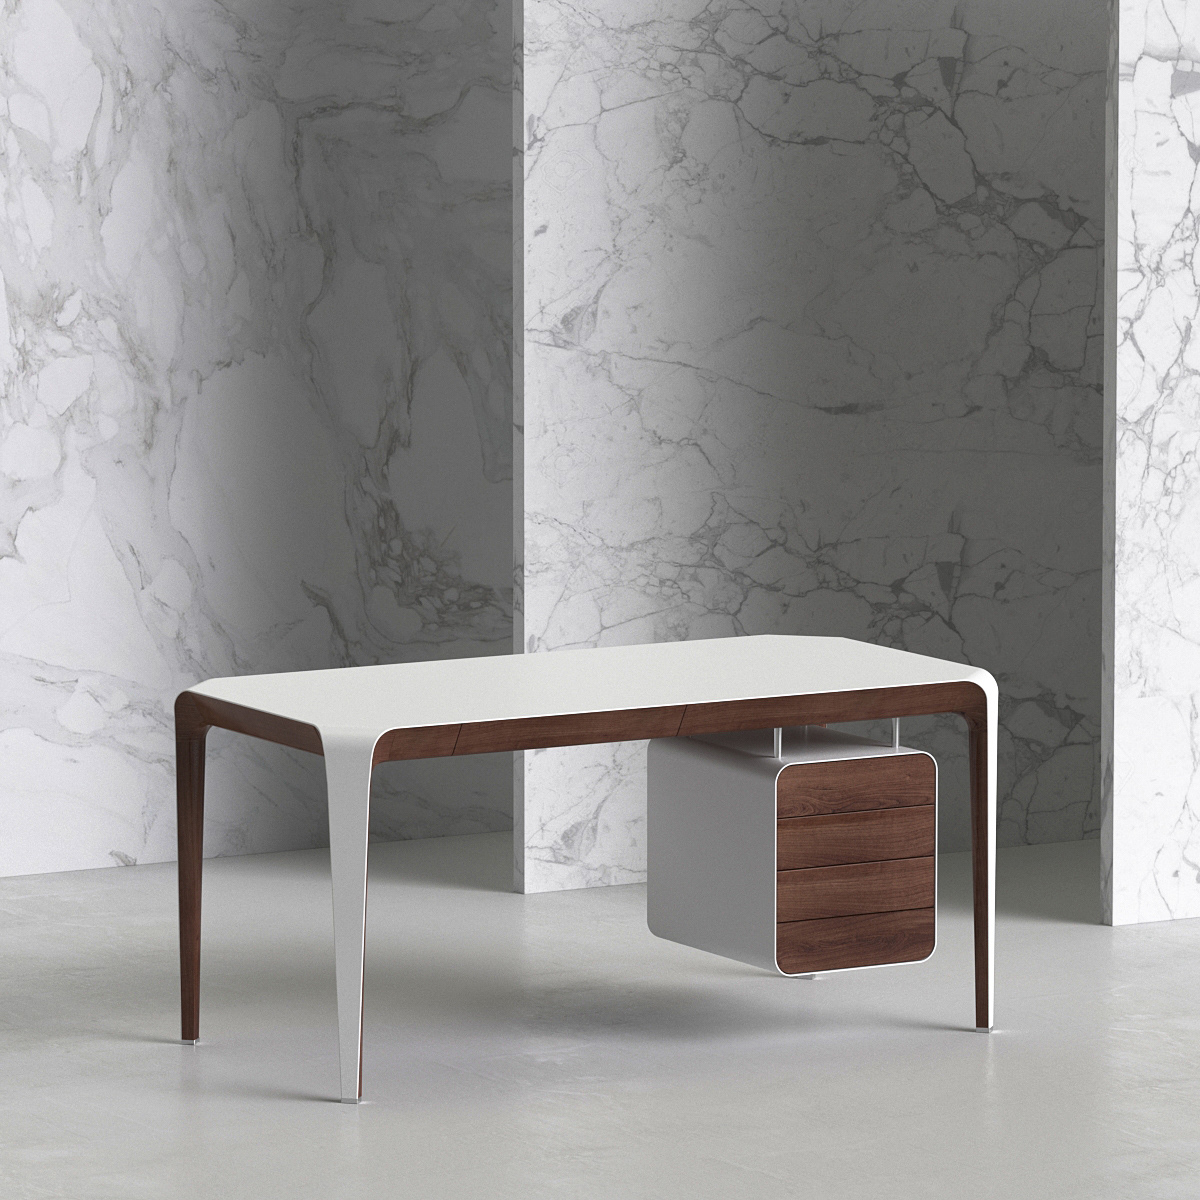 Aree table